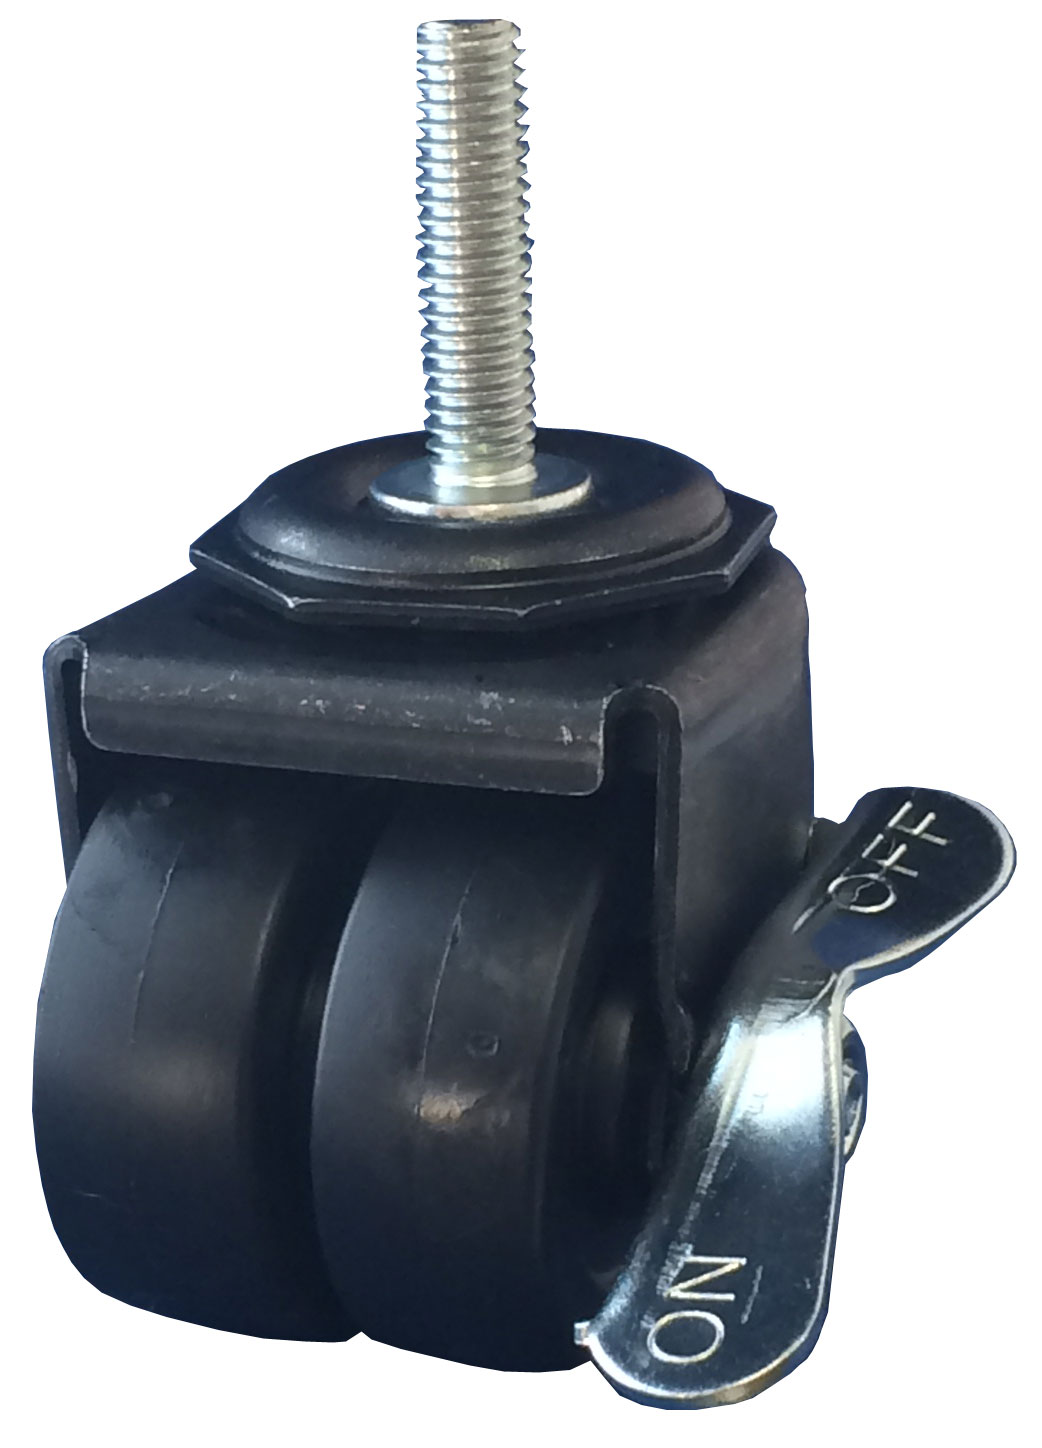 Swivel Dual Wheel Caster with black wheels, Black finish, and Threaded Stem connector and a Brake.